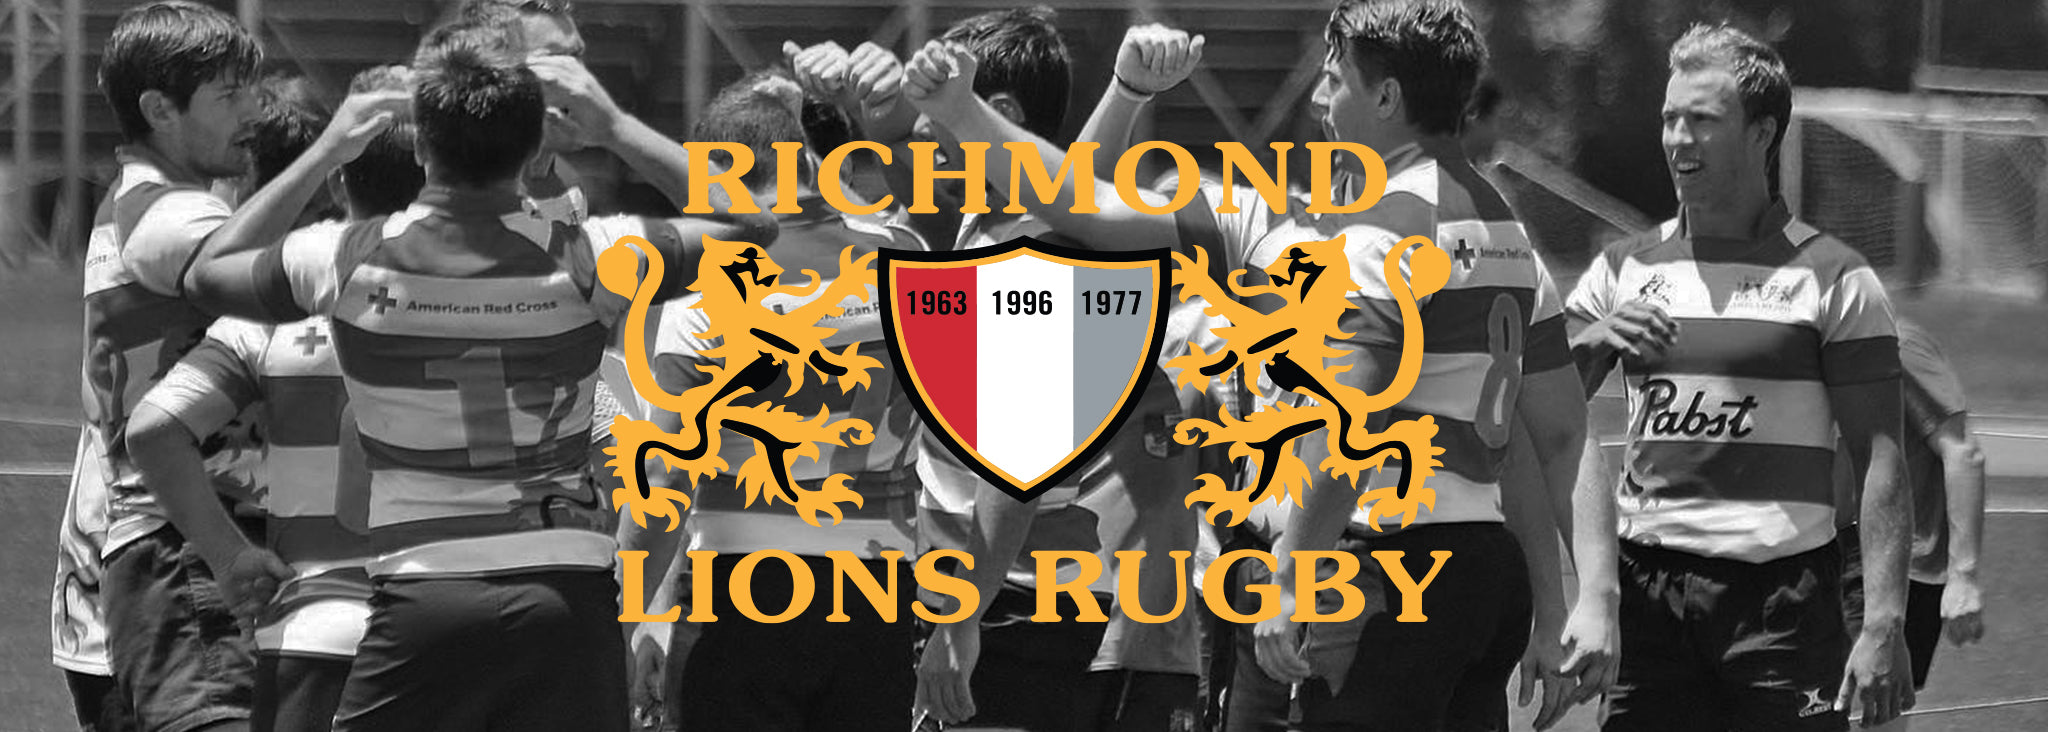 Richmond Lions Rugby